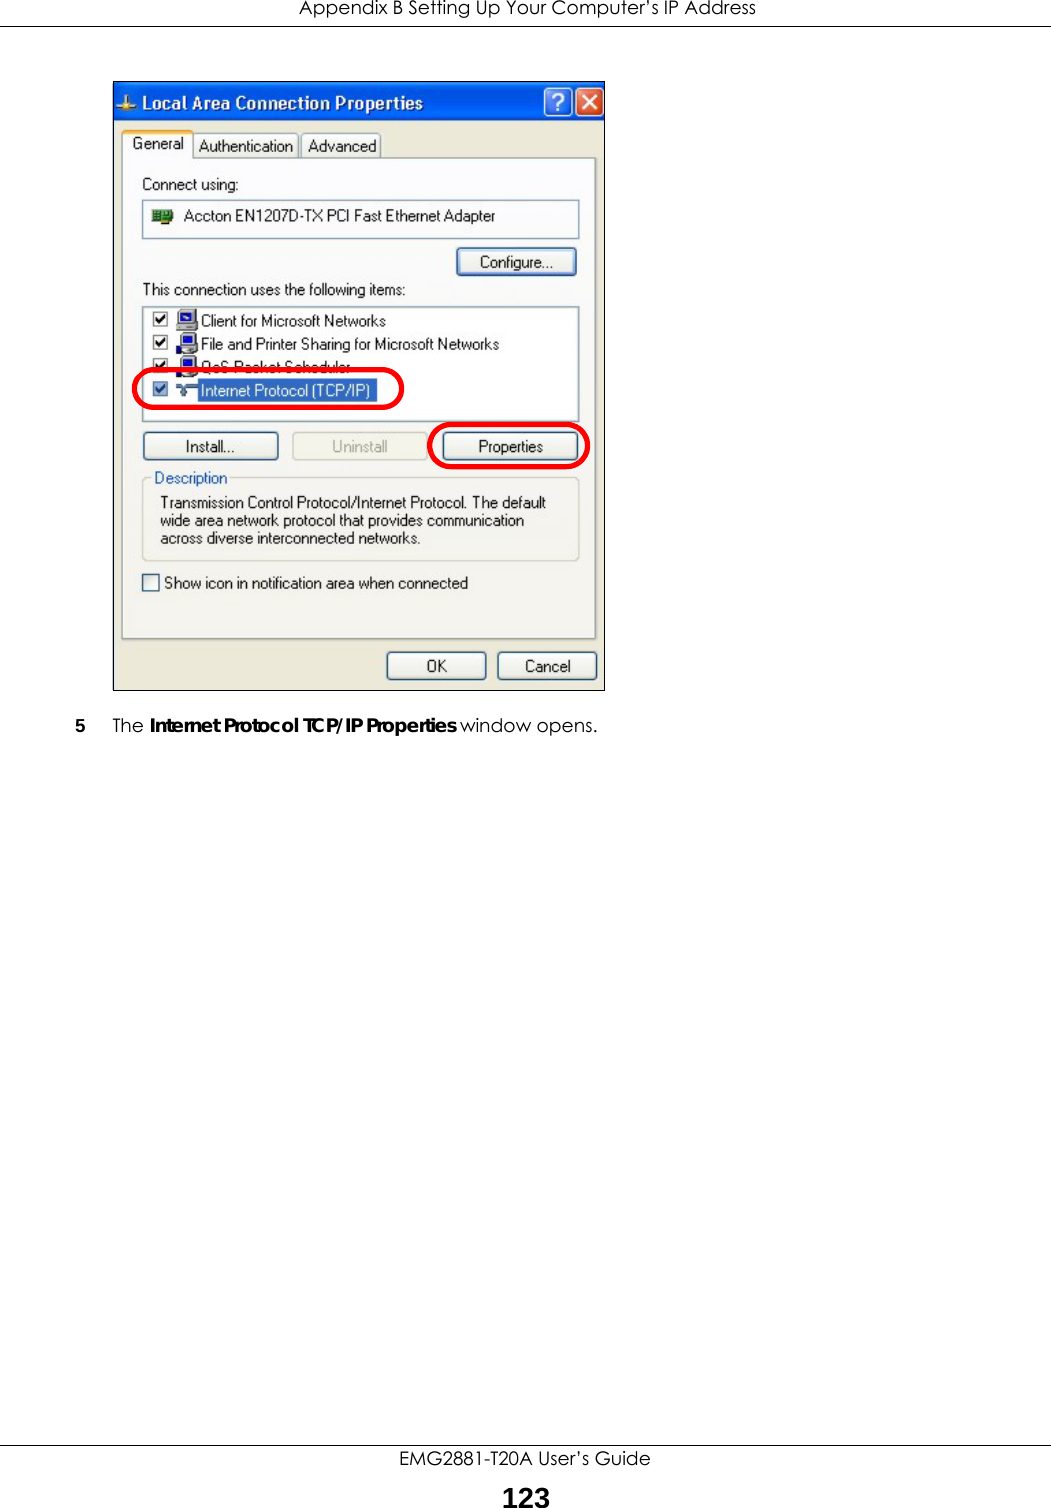 Appendix B Setting Up Your Computer's IP AddressEMG2881-T20A User's Guide1235The Internet Protocol TCP/IP Properties window opens.